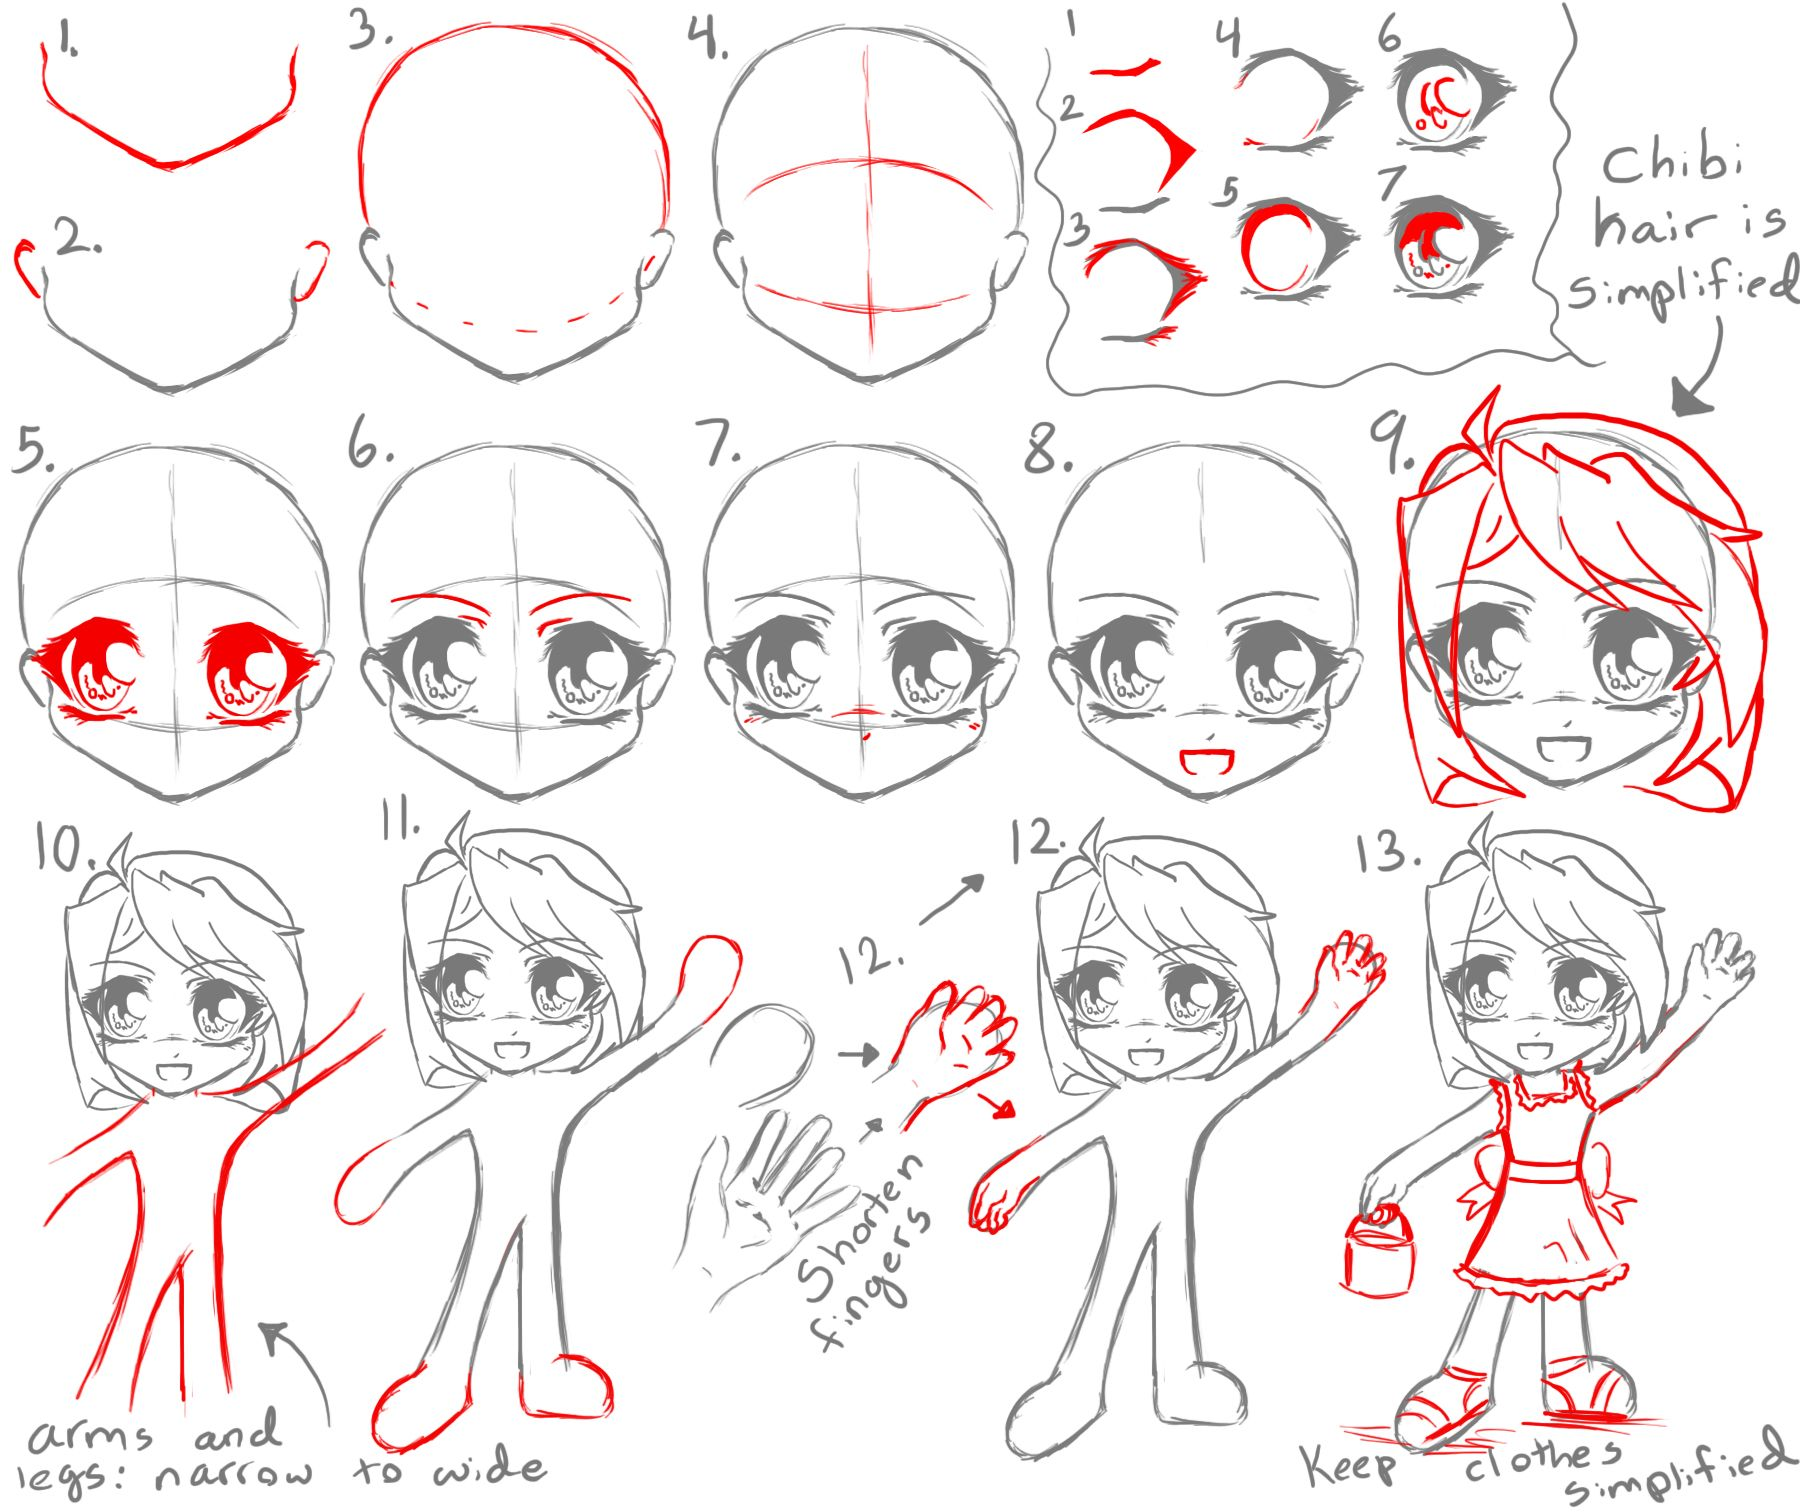 Chibi Tutorial By Manic Goose How To Draw Chibi People Chibi Drawing Tutorial Reference Pose Japanese Cute Kaw Chibi Drawings Drawing Tutorial Drawings